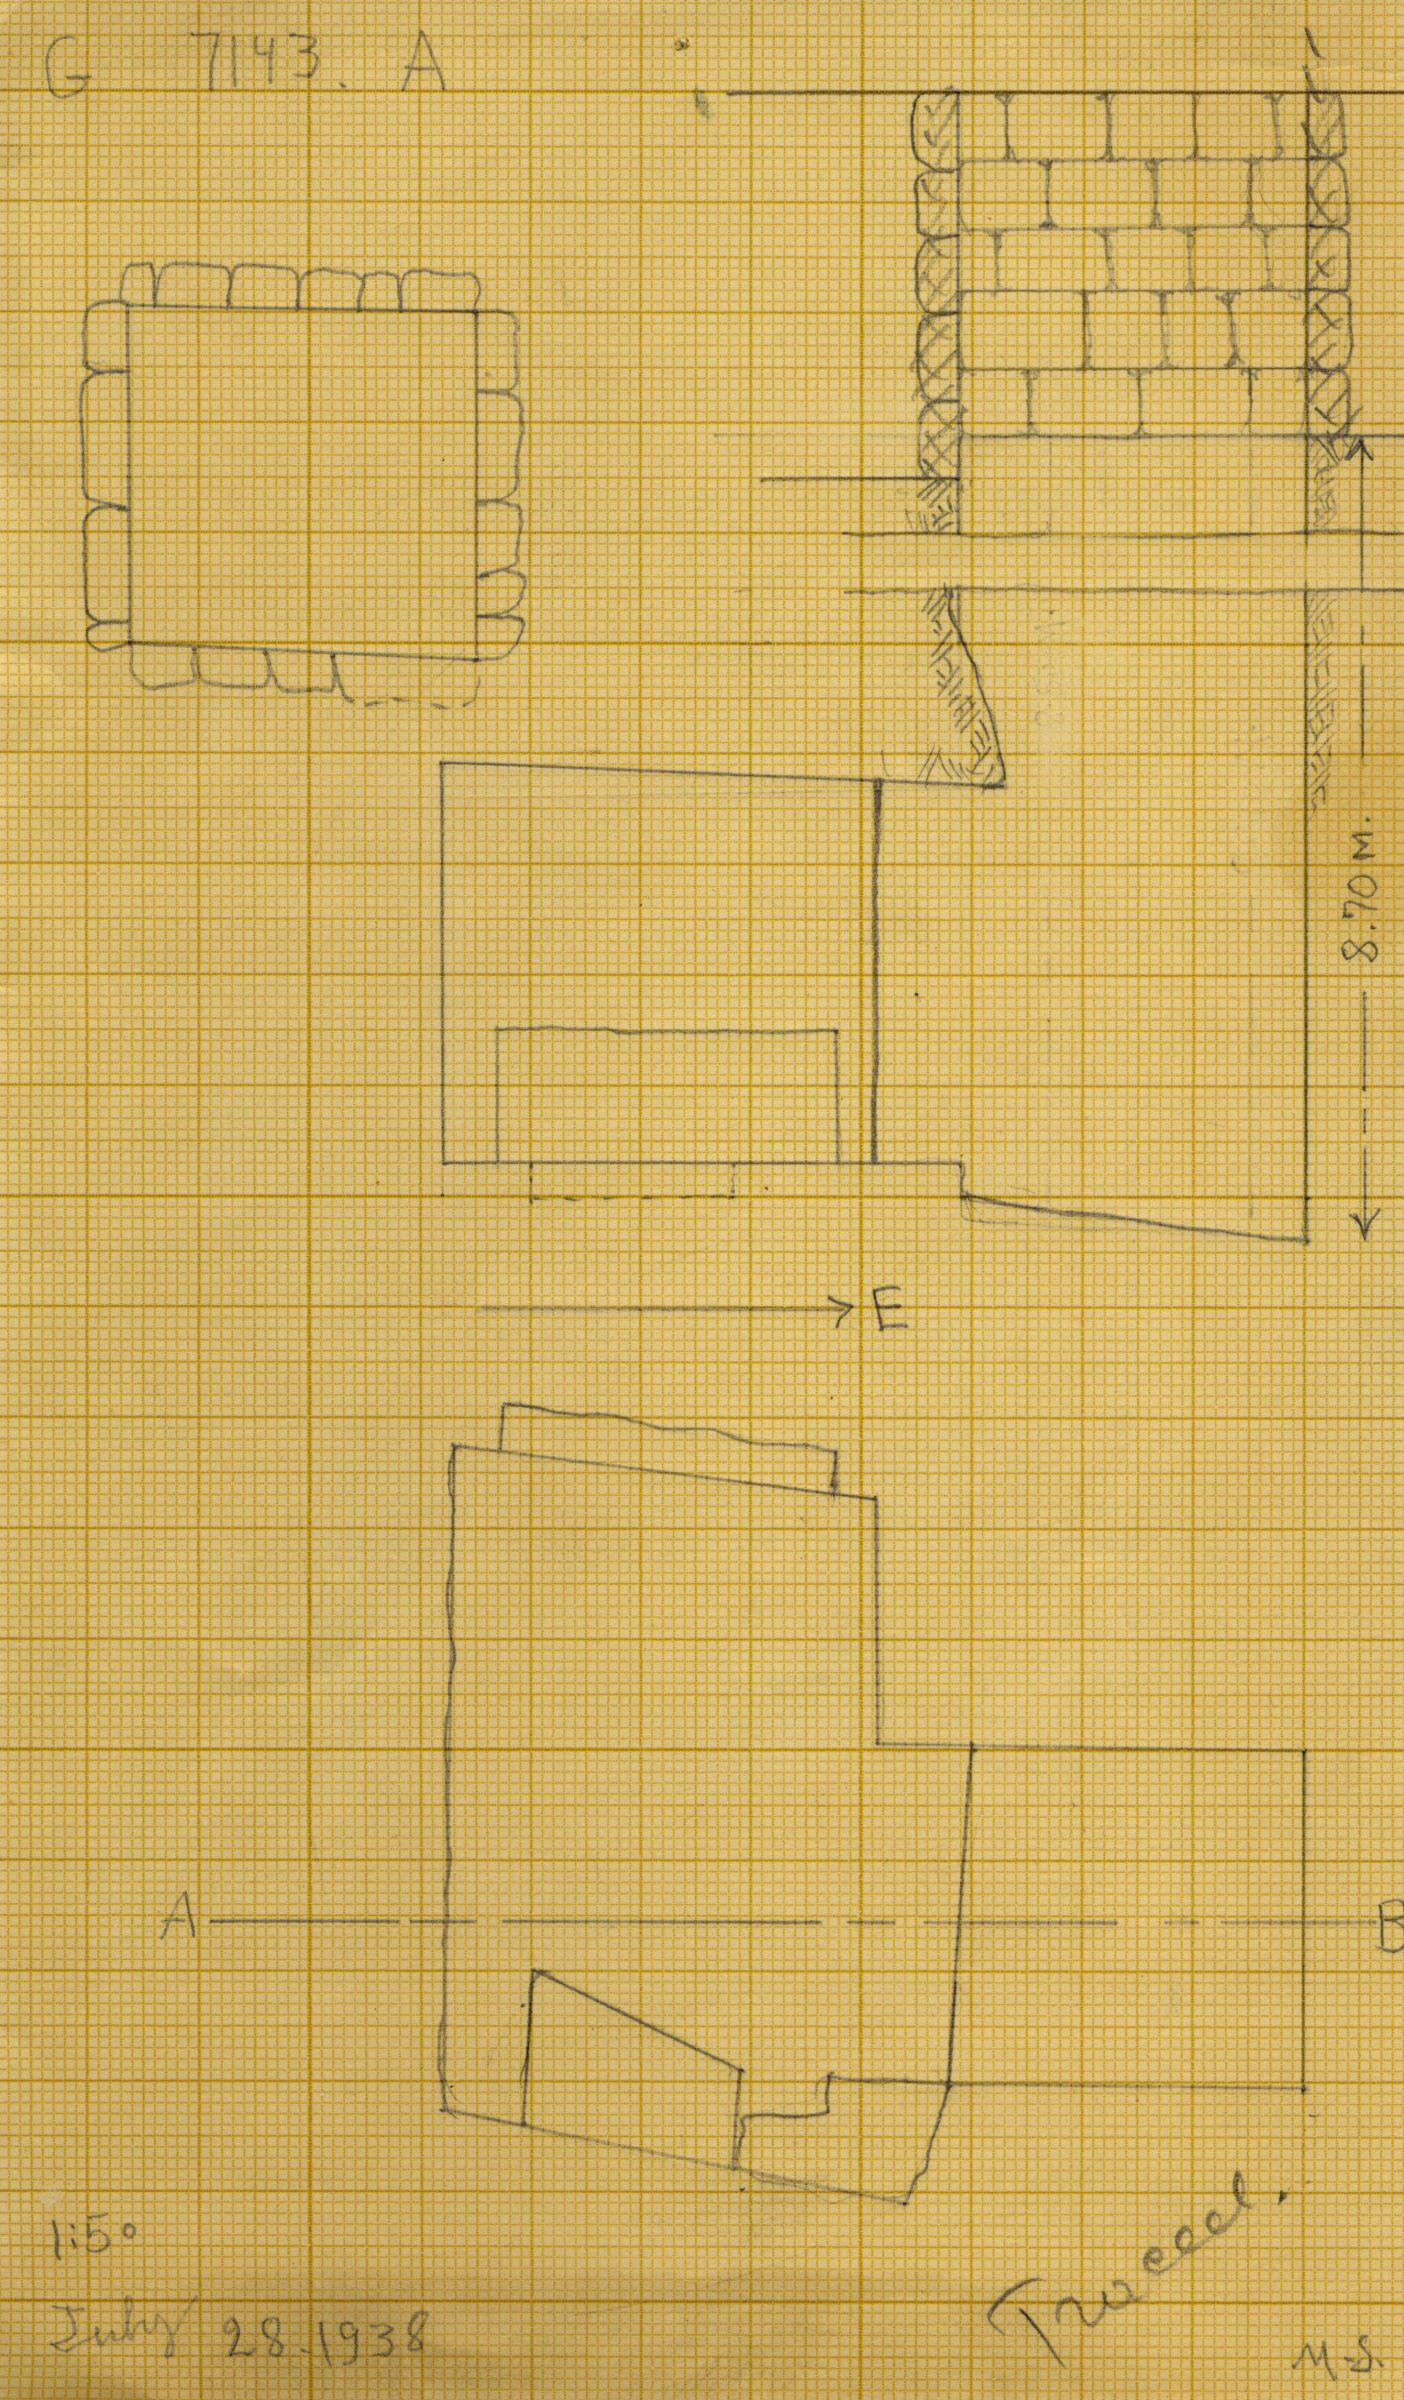 Maps and plans: G 7143, Shaft A